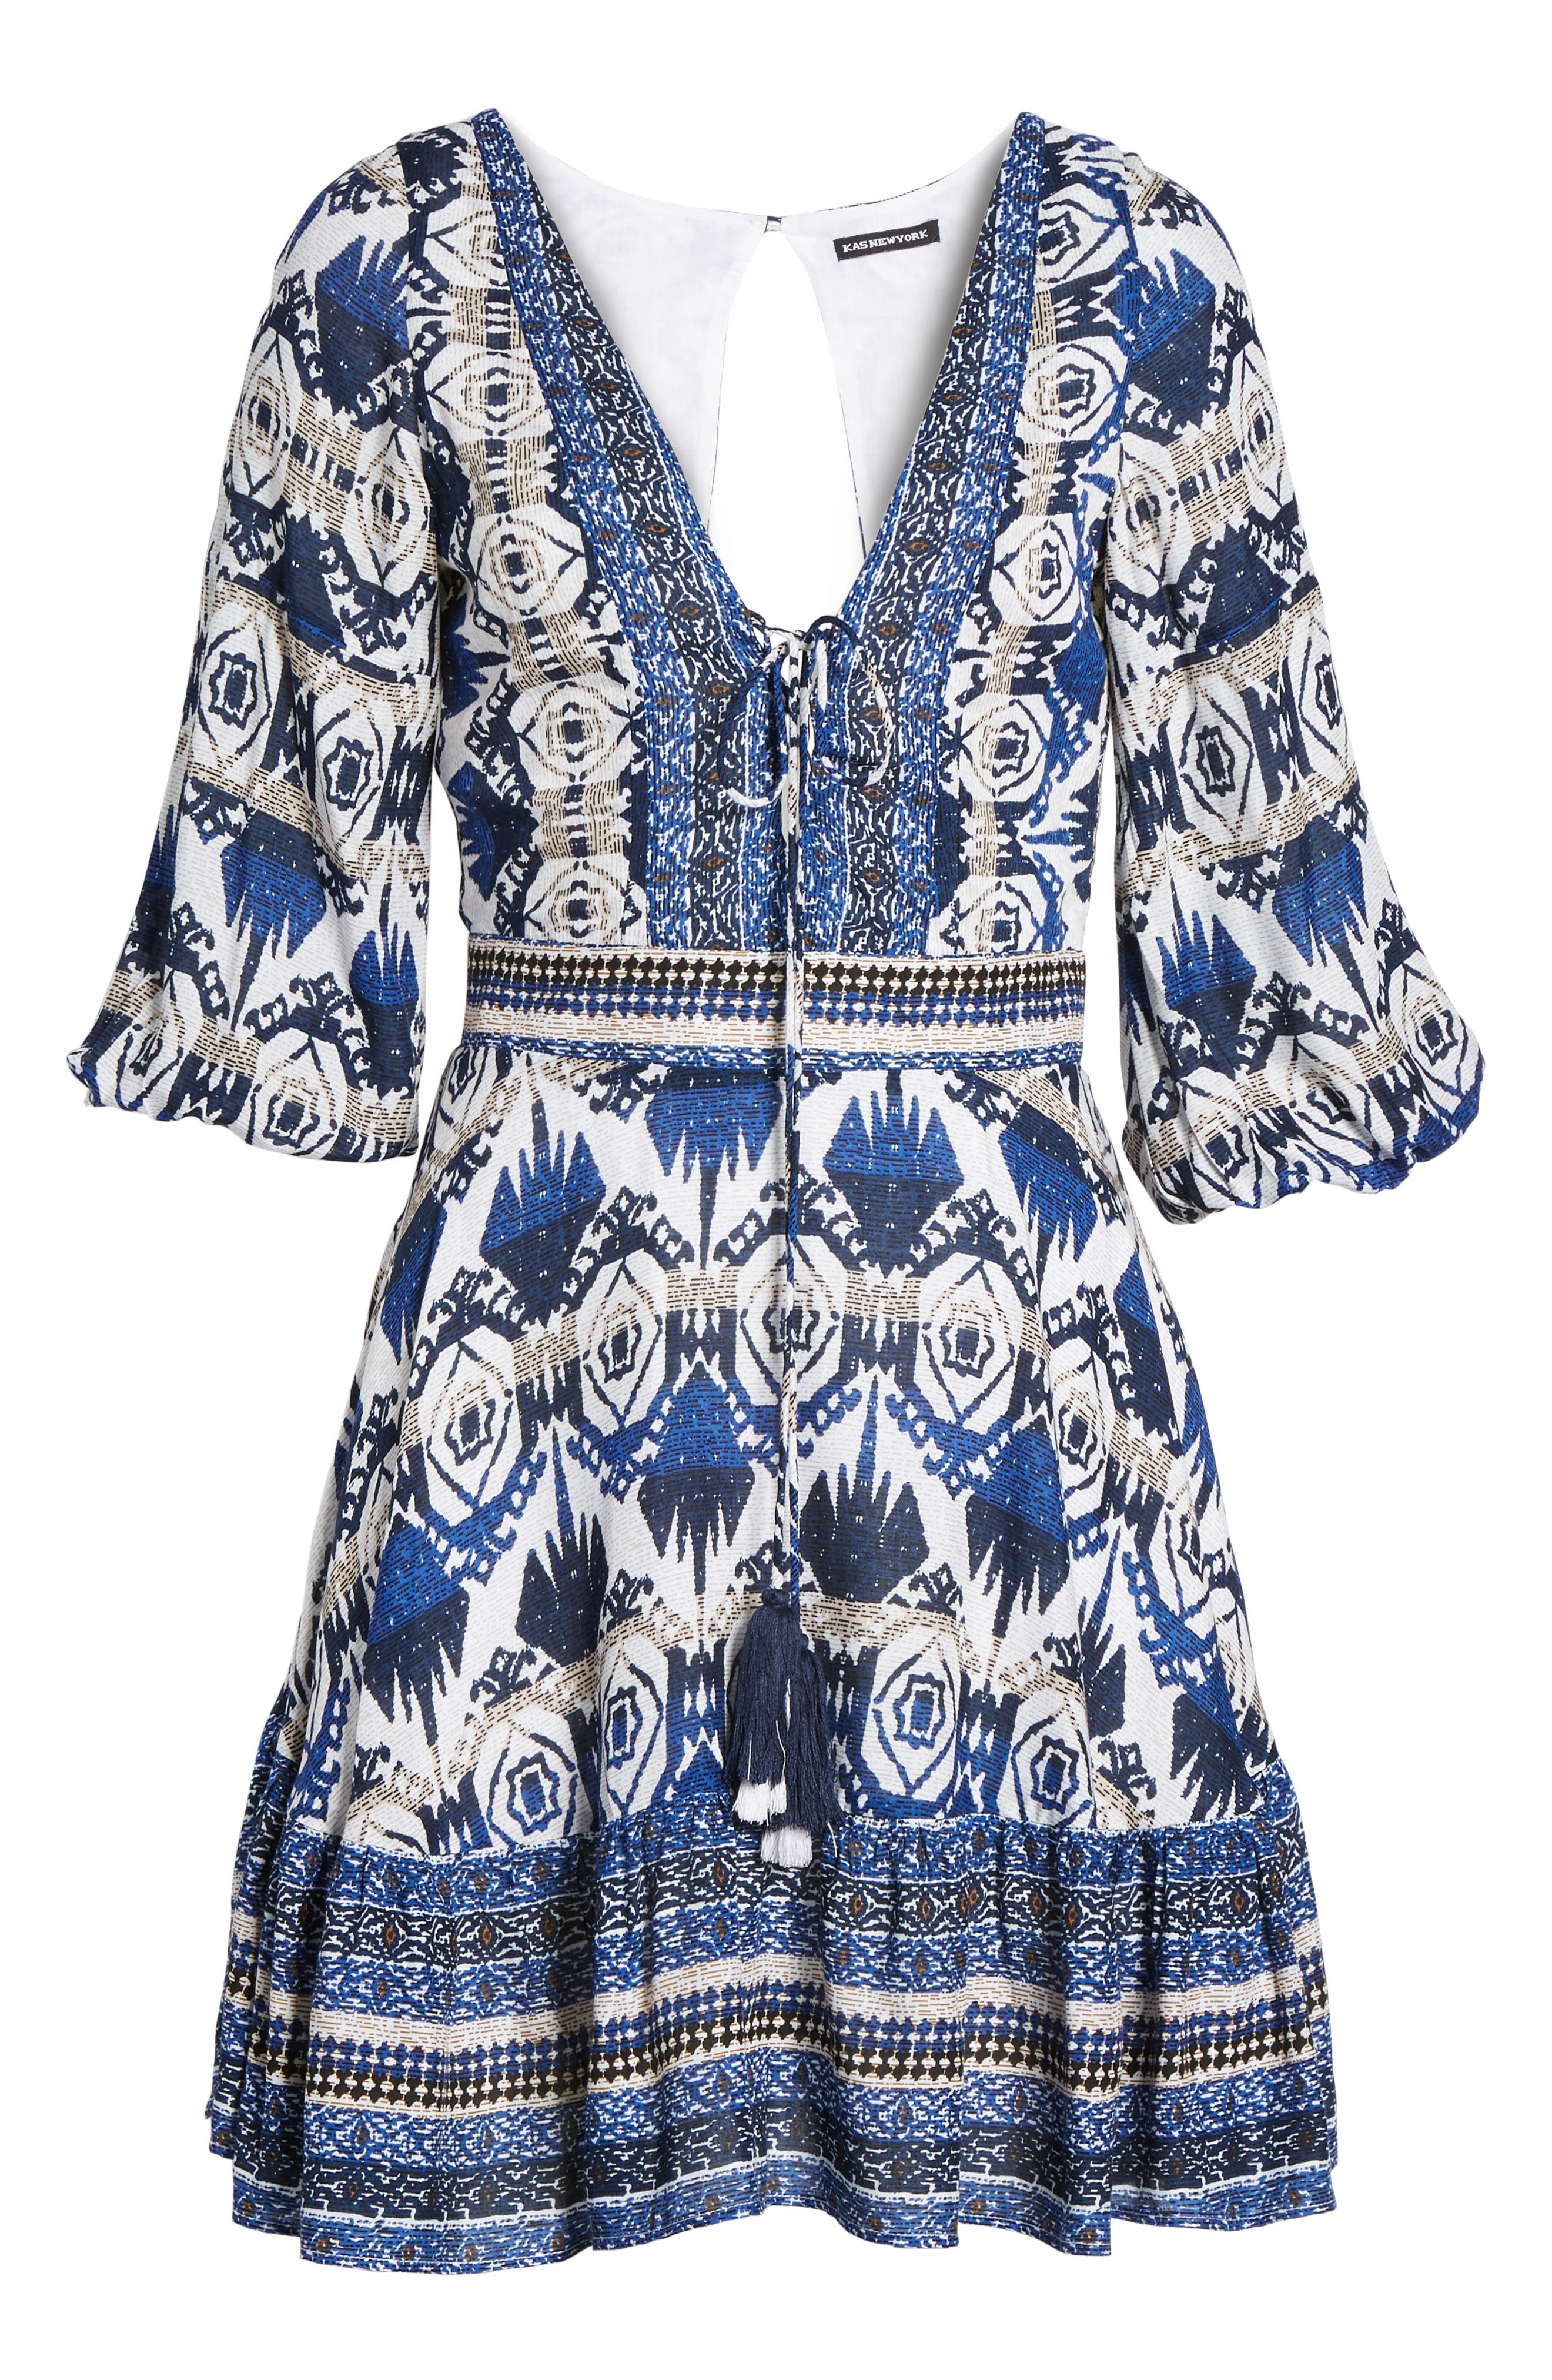 Camille Mixed Print Fit & Flare Dress,                             Alternate thumbnail 6, color,                             400